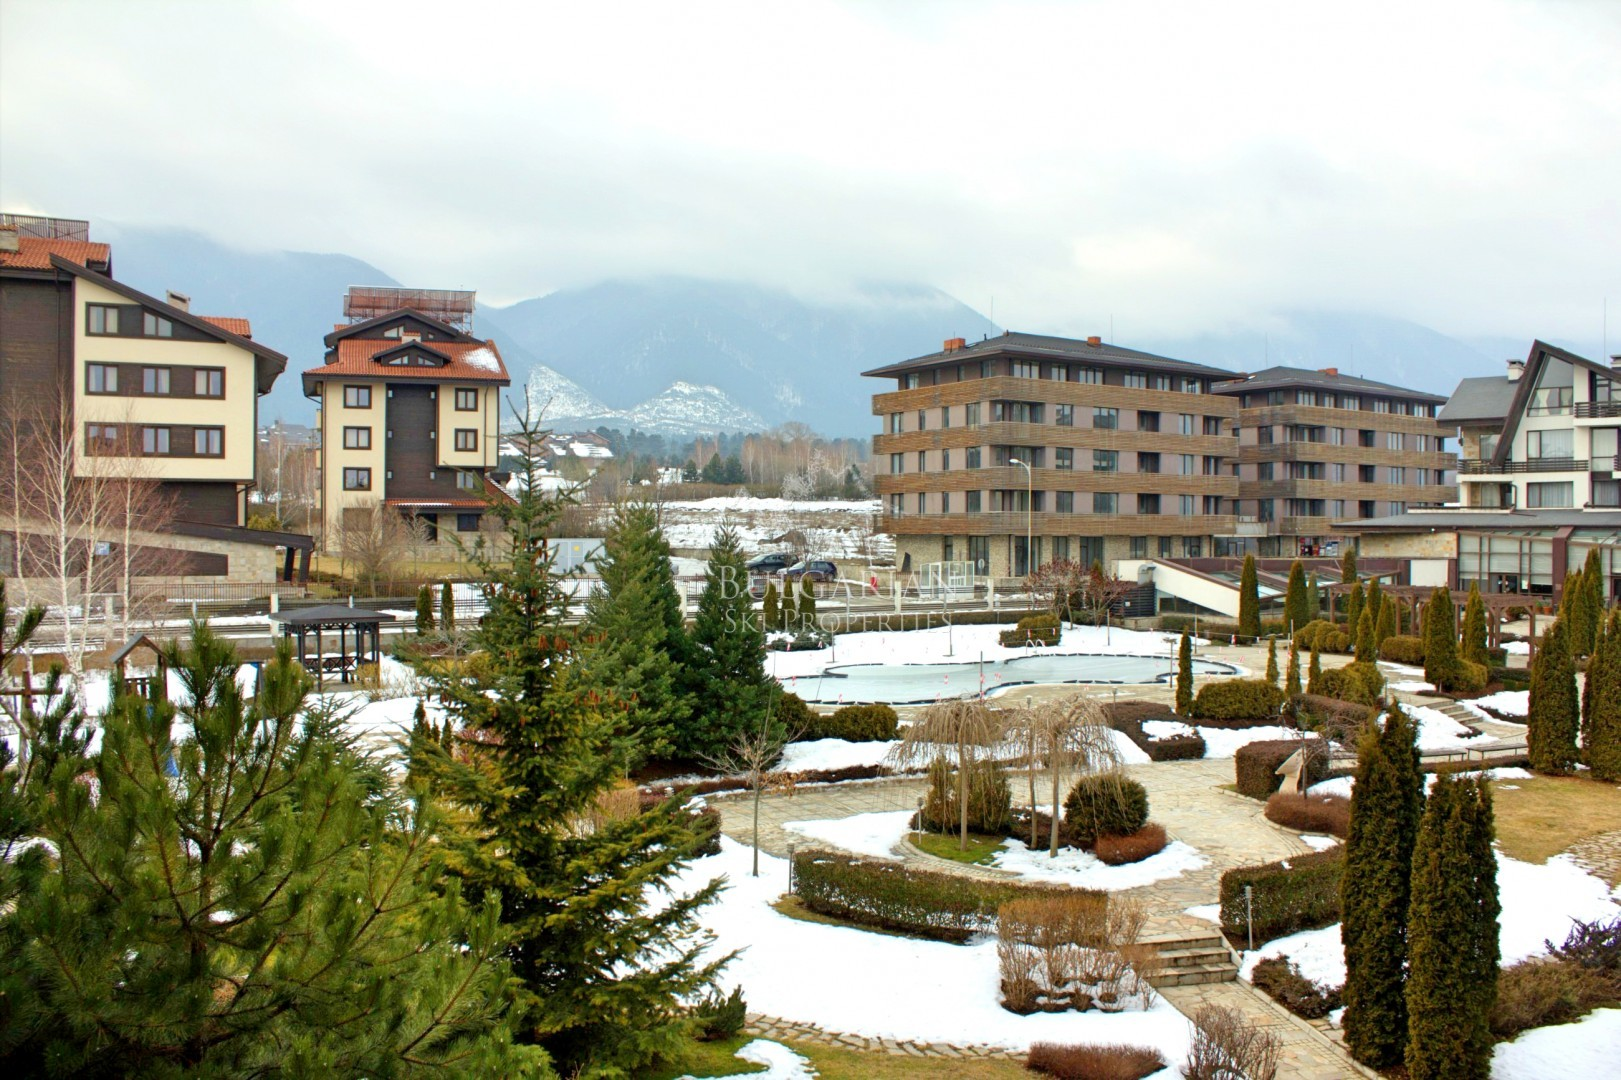 Aspen Golf, Bansko: panoramic one-bedroom apartment for sale